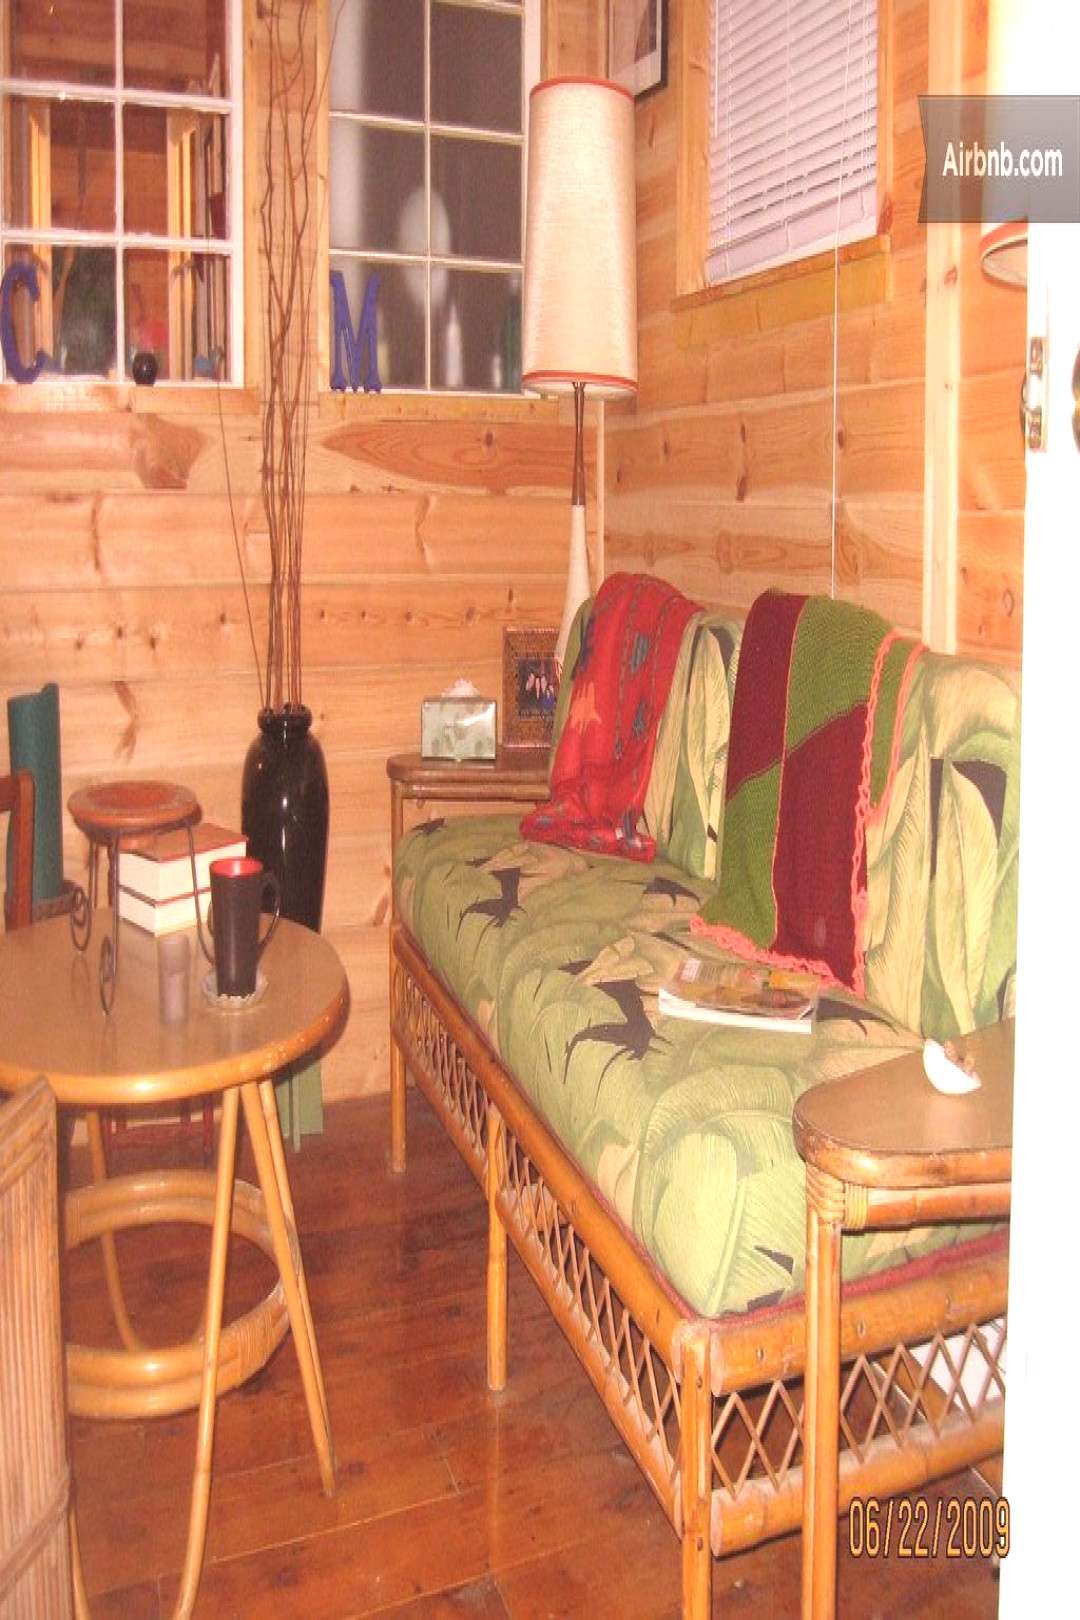 Weekend Getaway Cabin - Brookfront! - Cabins for Rent in Milford, Pennsylvania, United States -  We